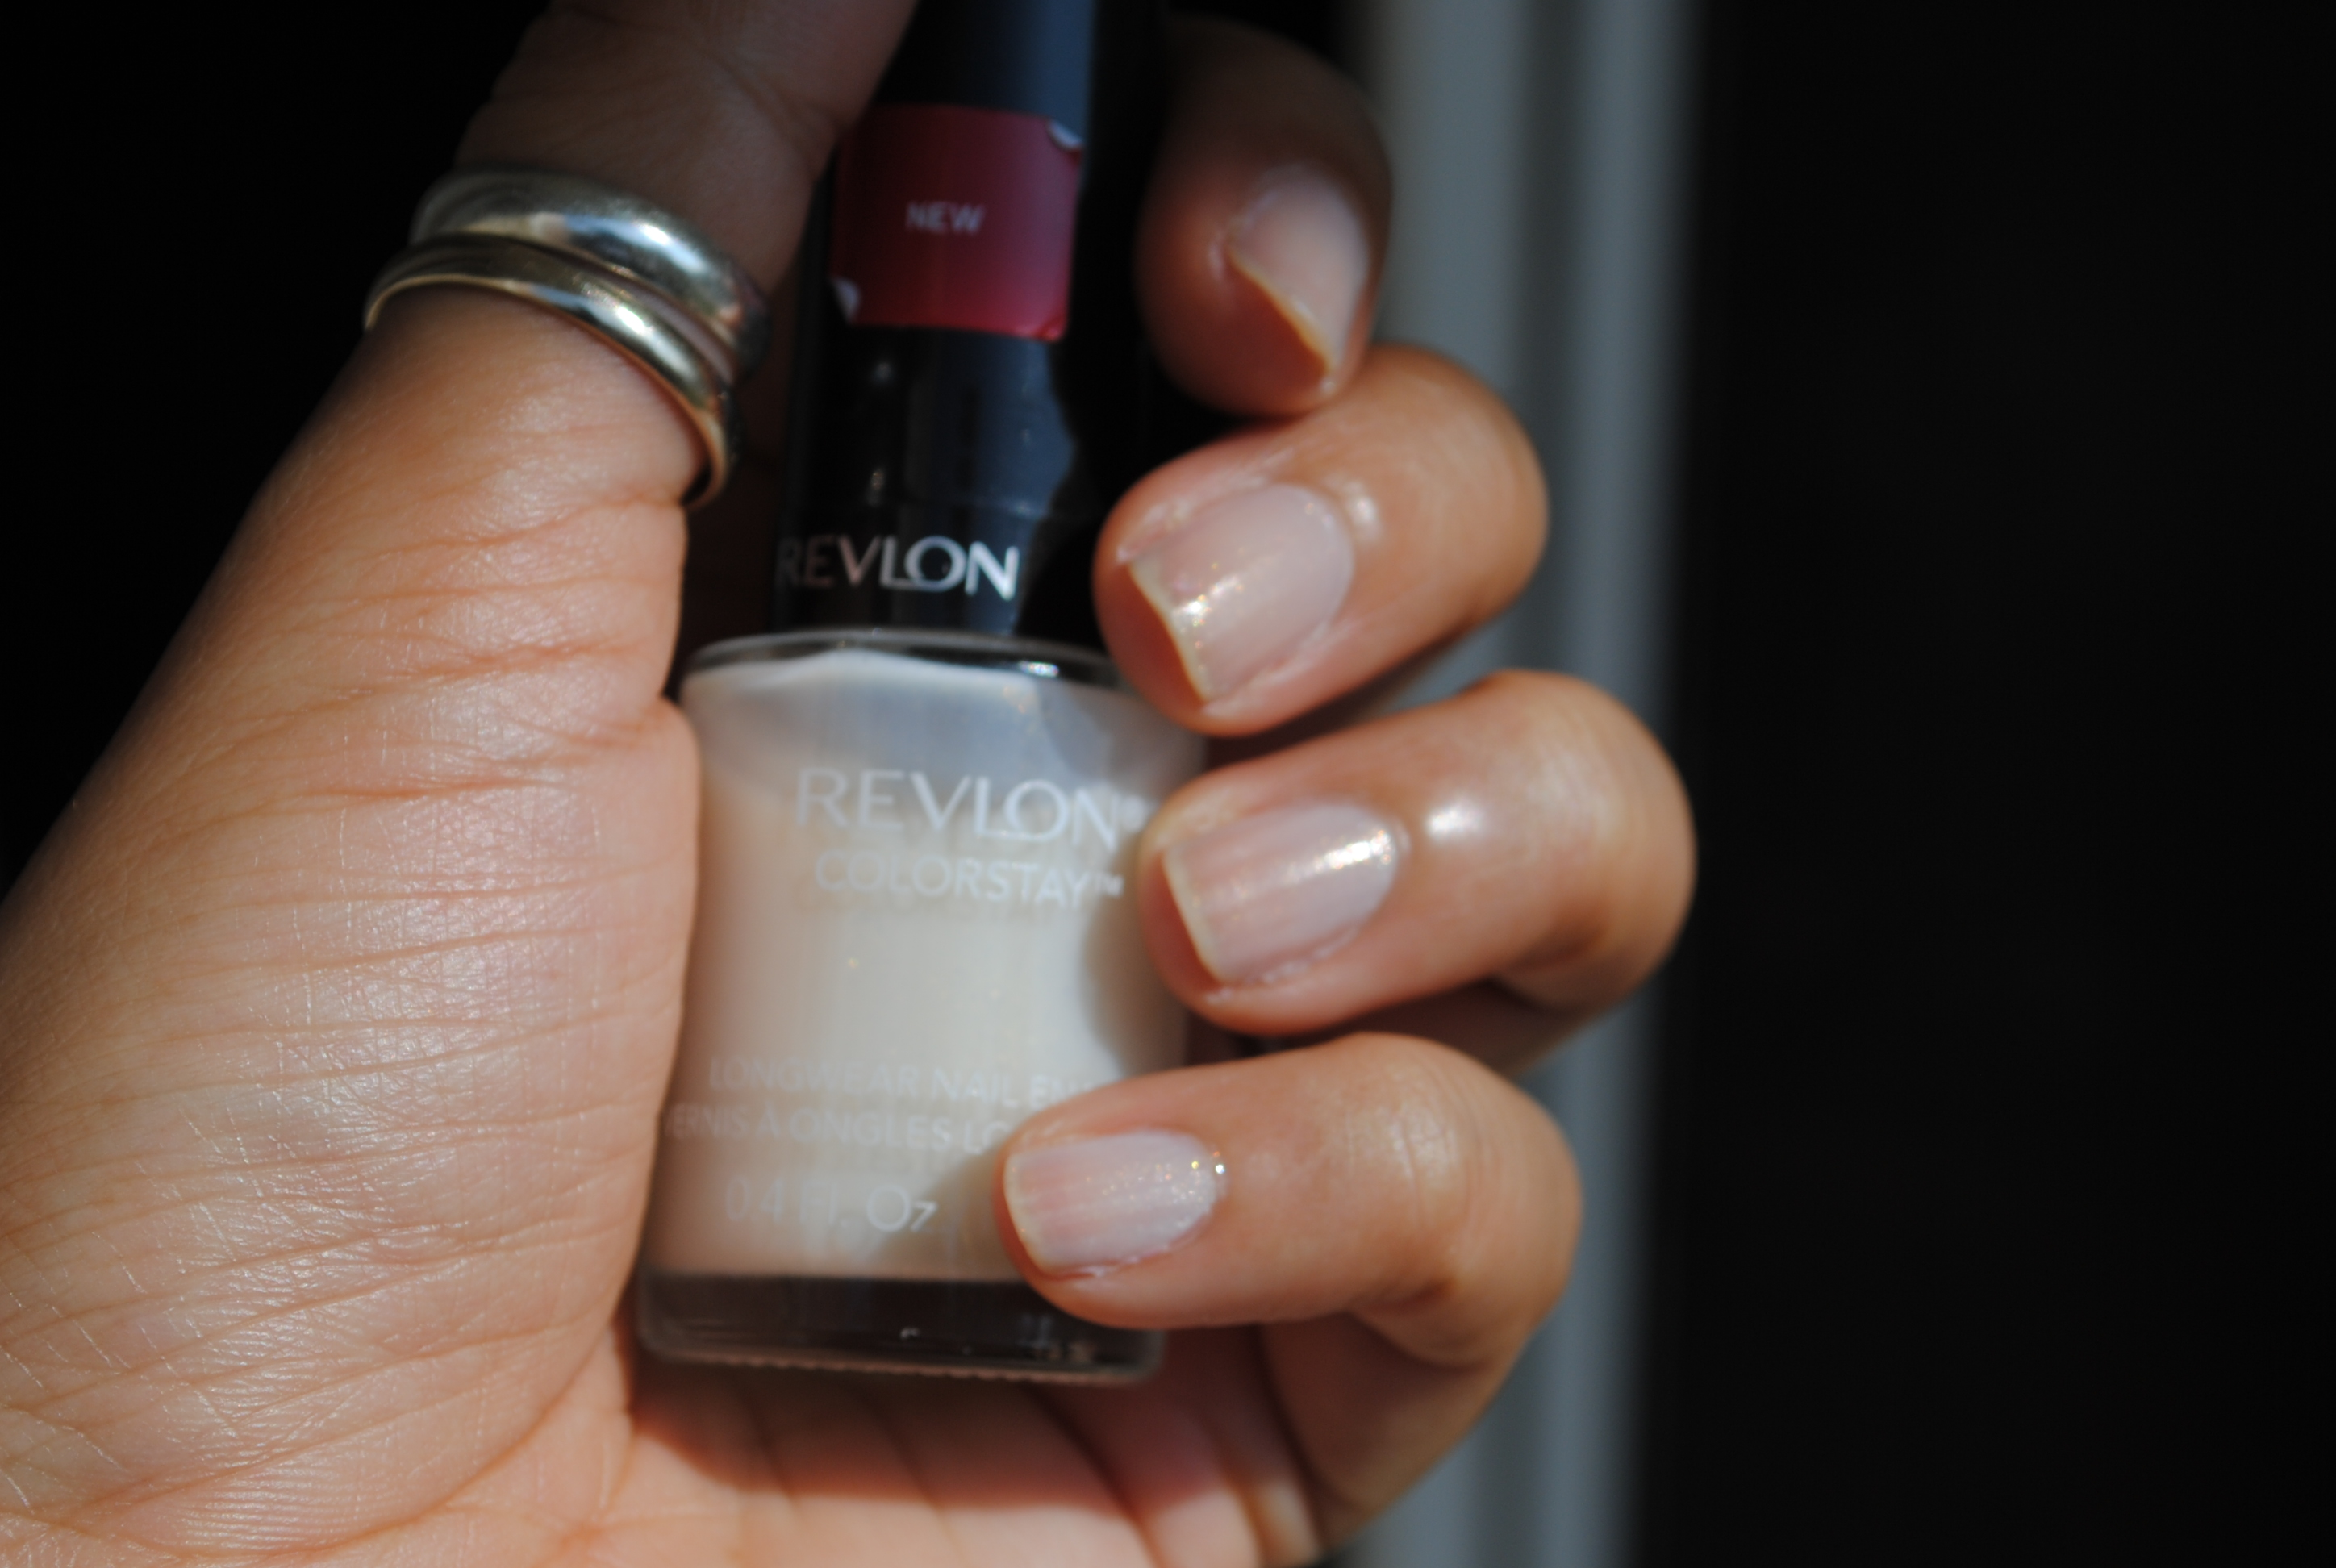 Revlon Colorstay Long Wear Nail Enamel in \'Calla Lilly\' | Blushes ...